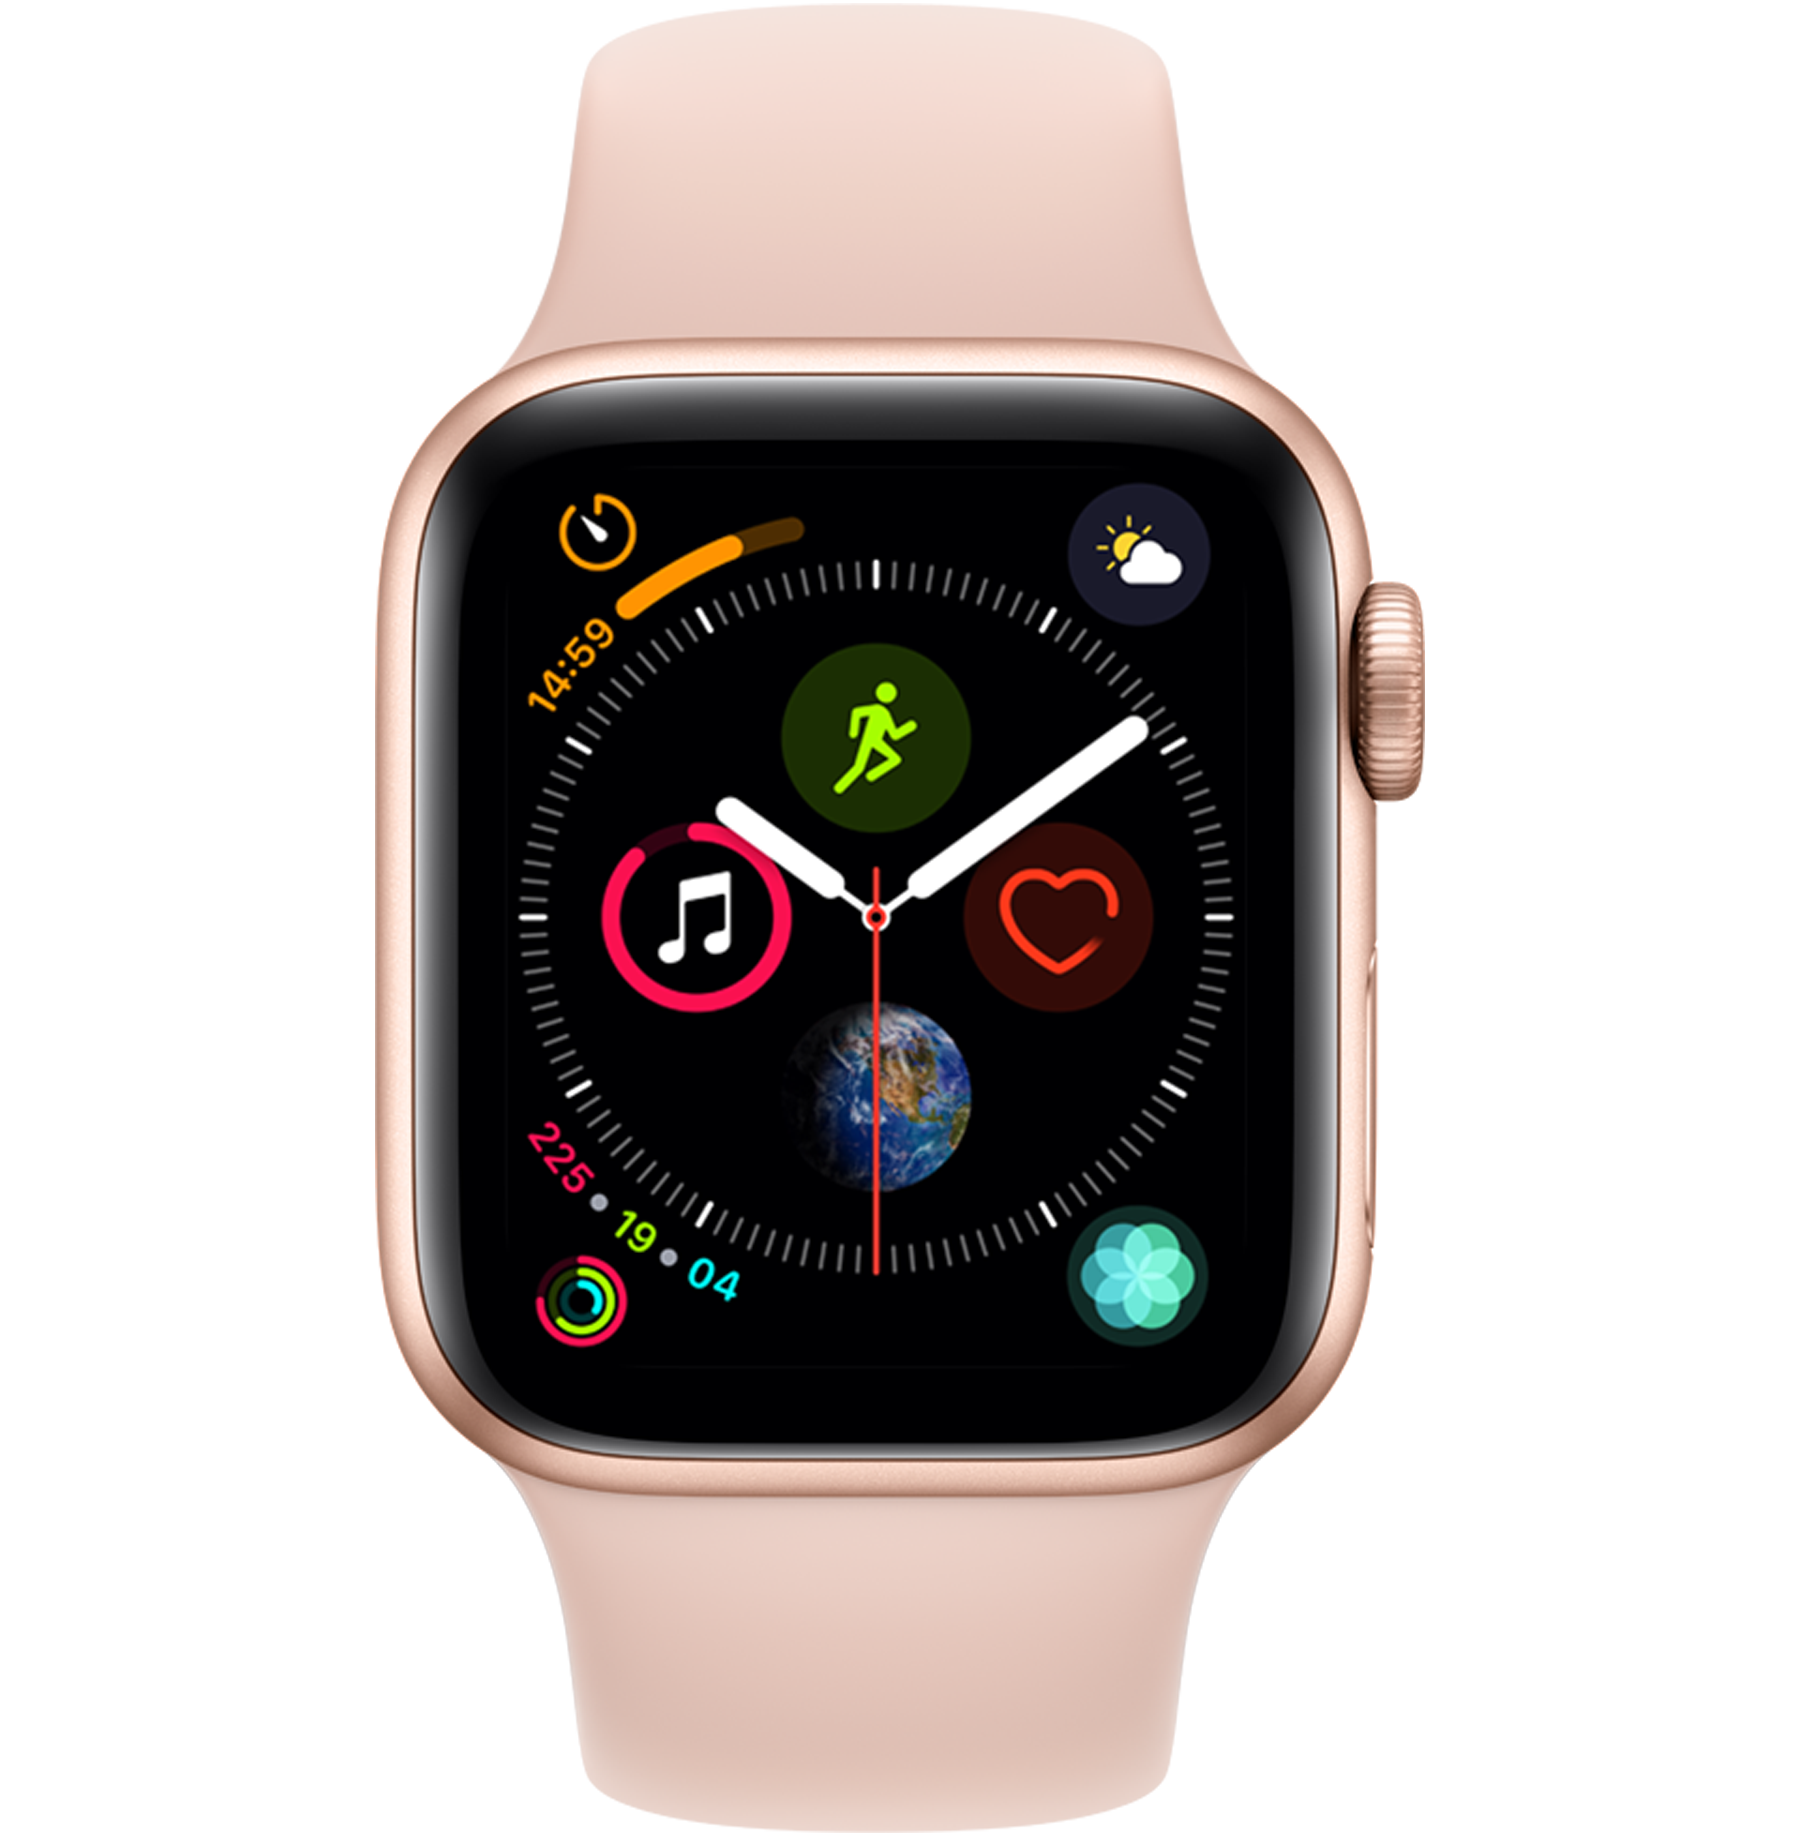 A side view of the Apple Watch Series 4 in Gold.